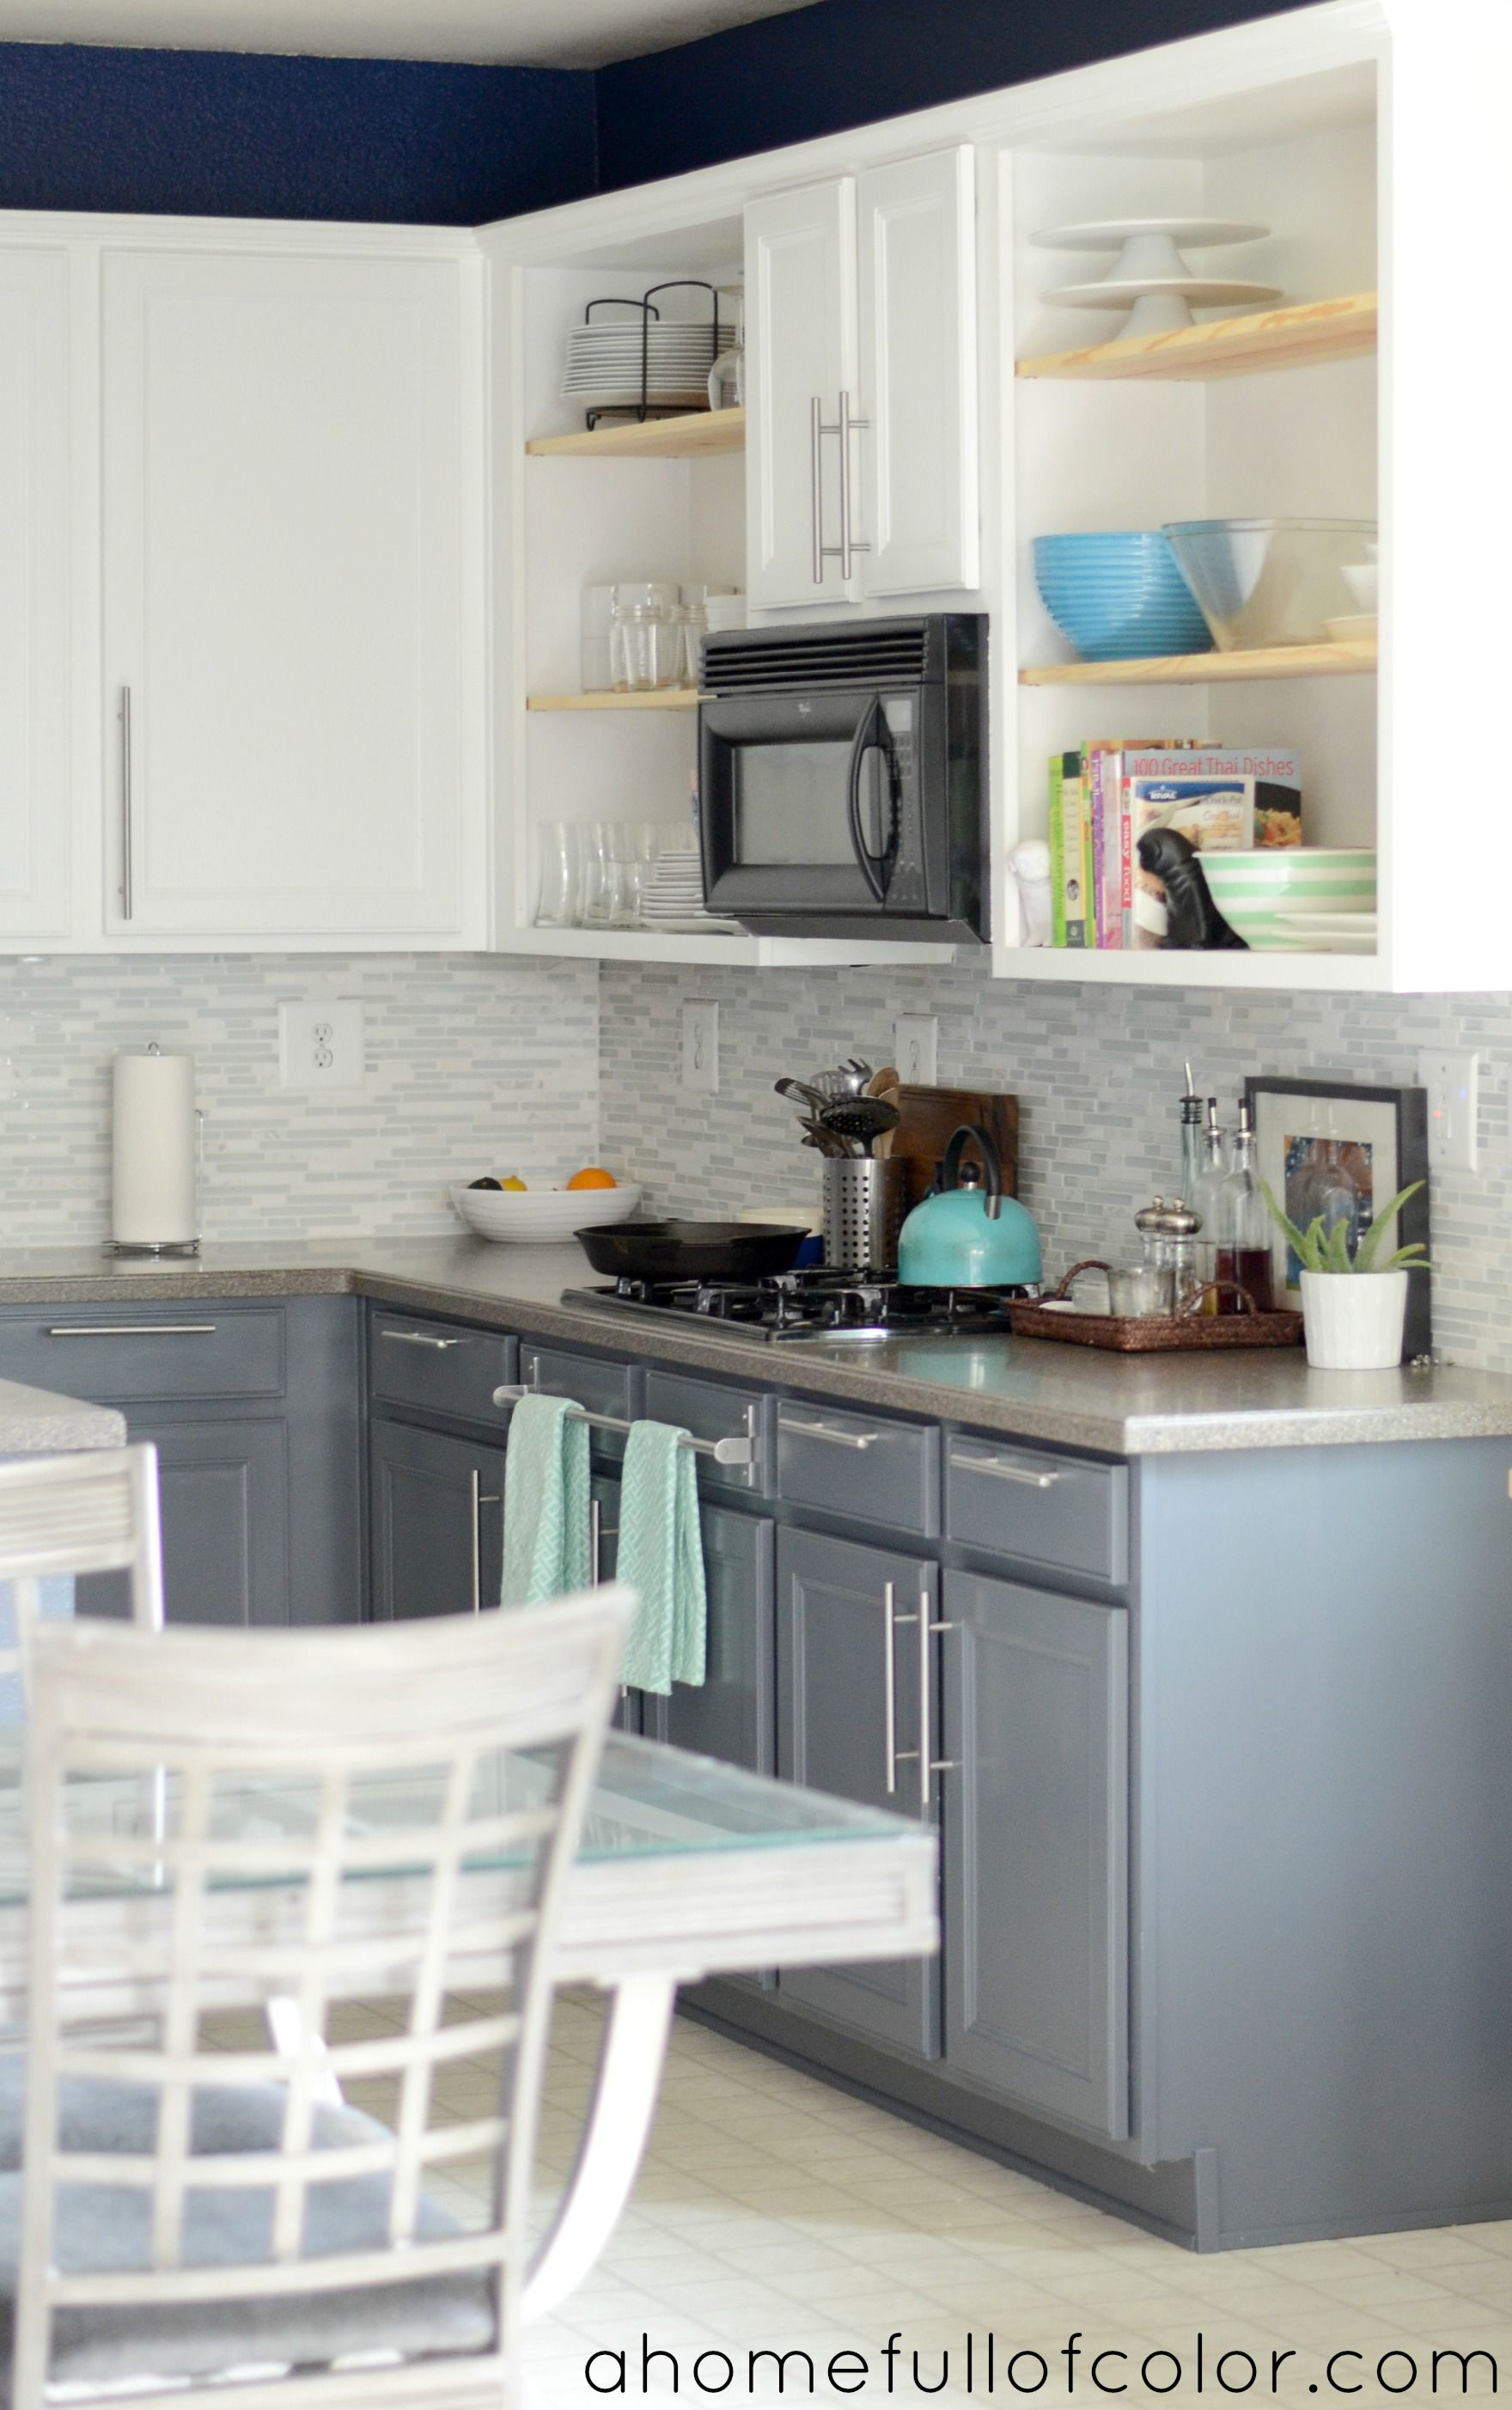 Benjamin Moore Kitchen Cabinet Colors Painted Two Tone Kitchen Cabinets White Uppers And Gray